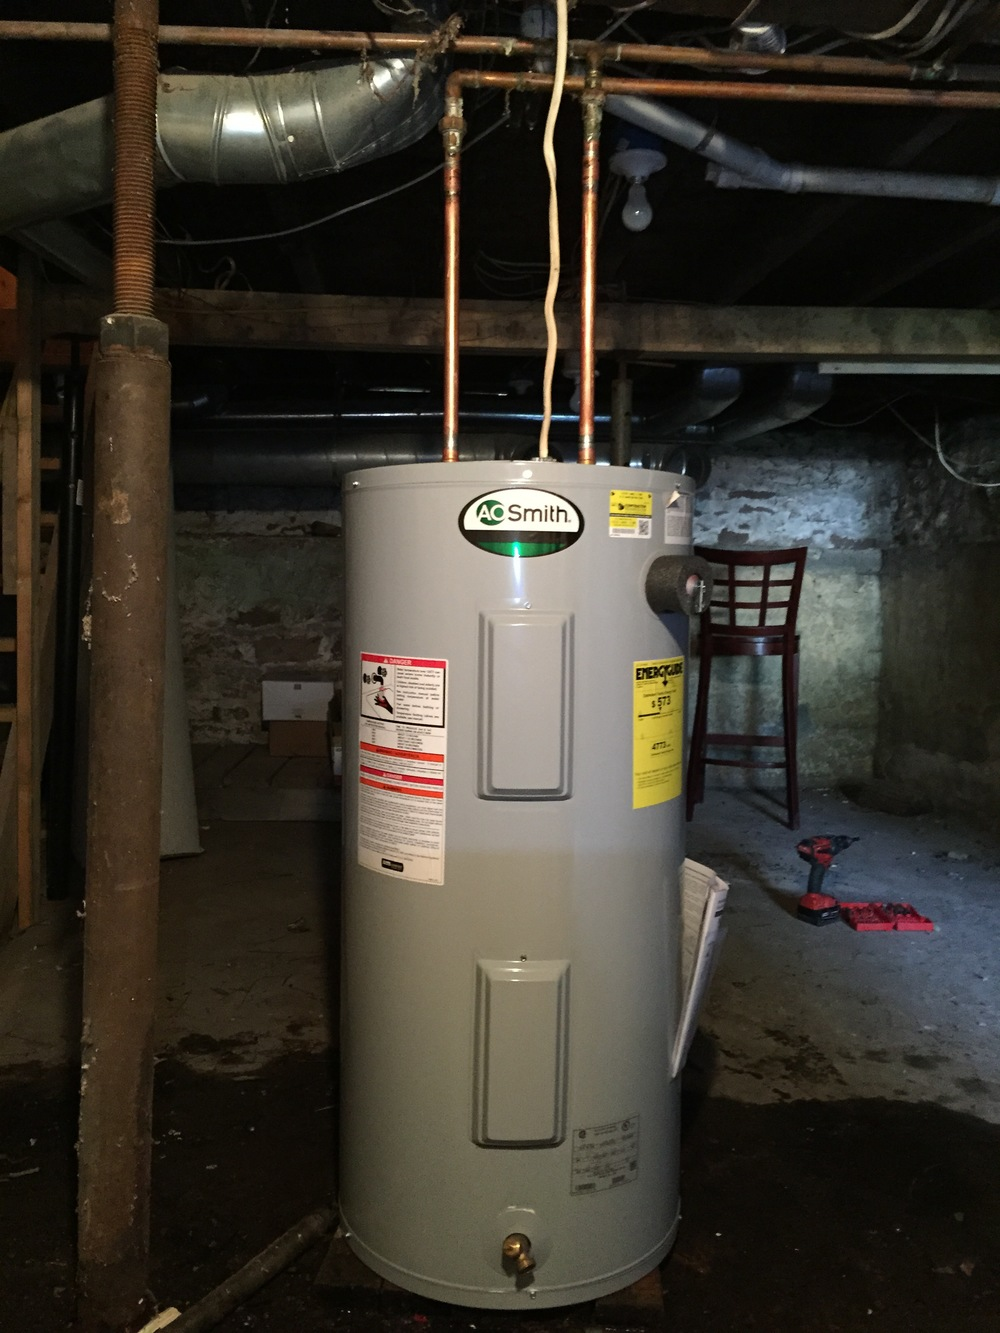 AO Smith - Electric Water Heater